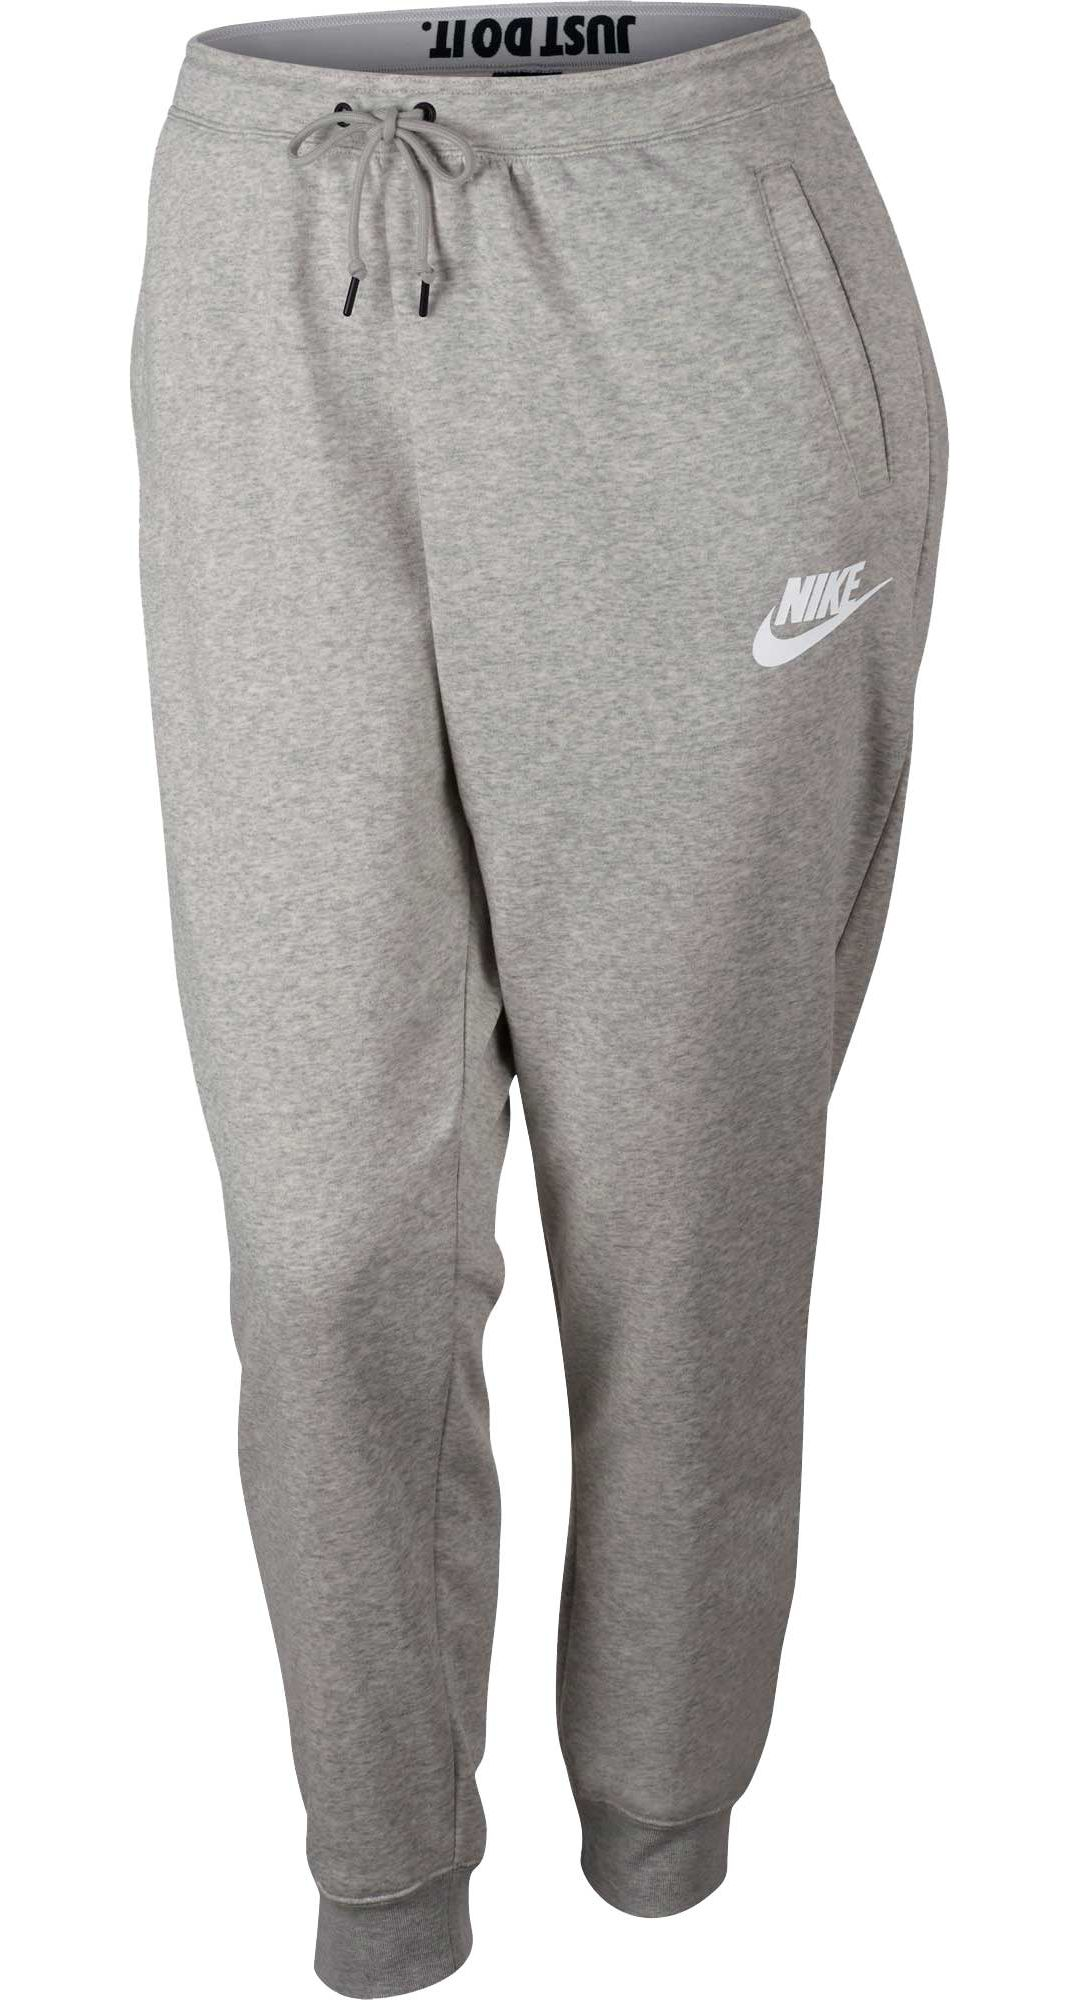 50% price good out x buy cheap Nike Women's Plus Size Rally Joggers